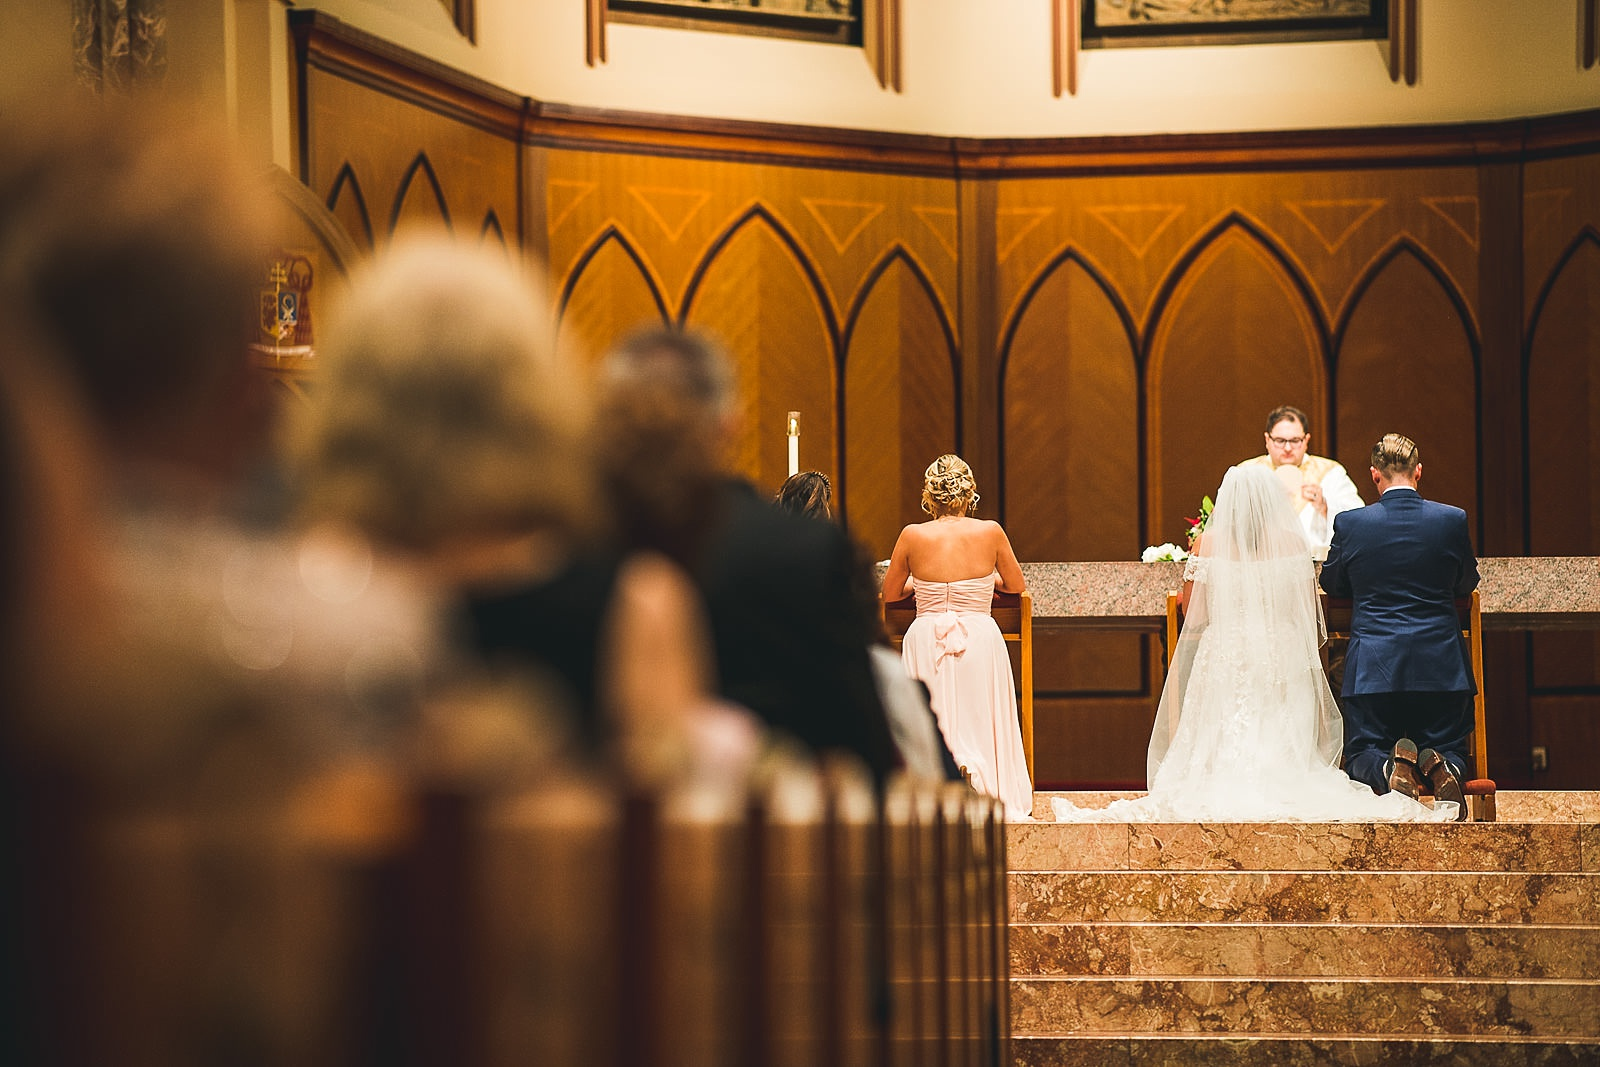 35 creative church wedding photographers - Hilton Chicago Wedding Photographer // Sarah + Aaron